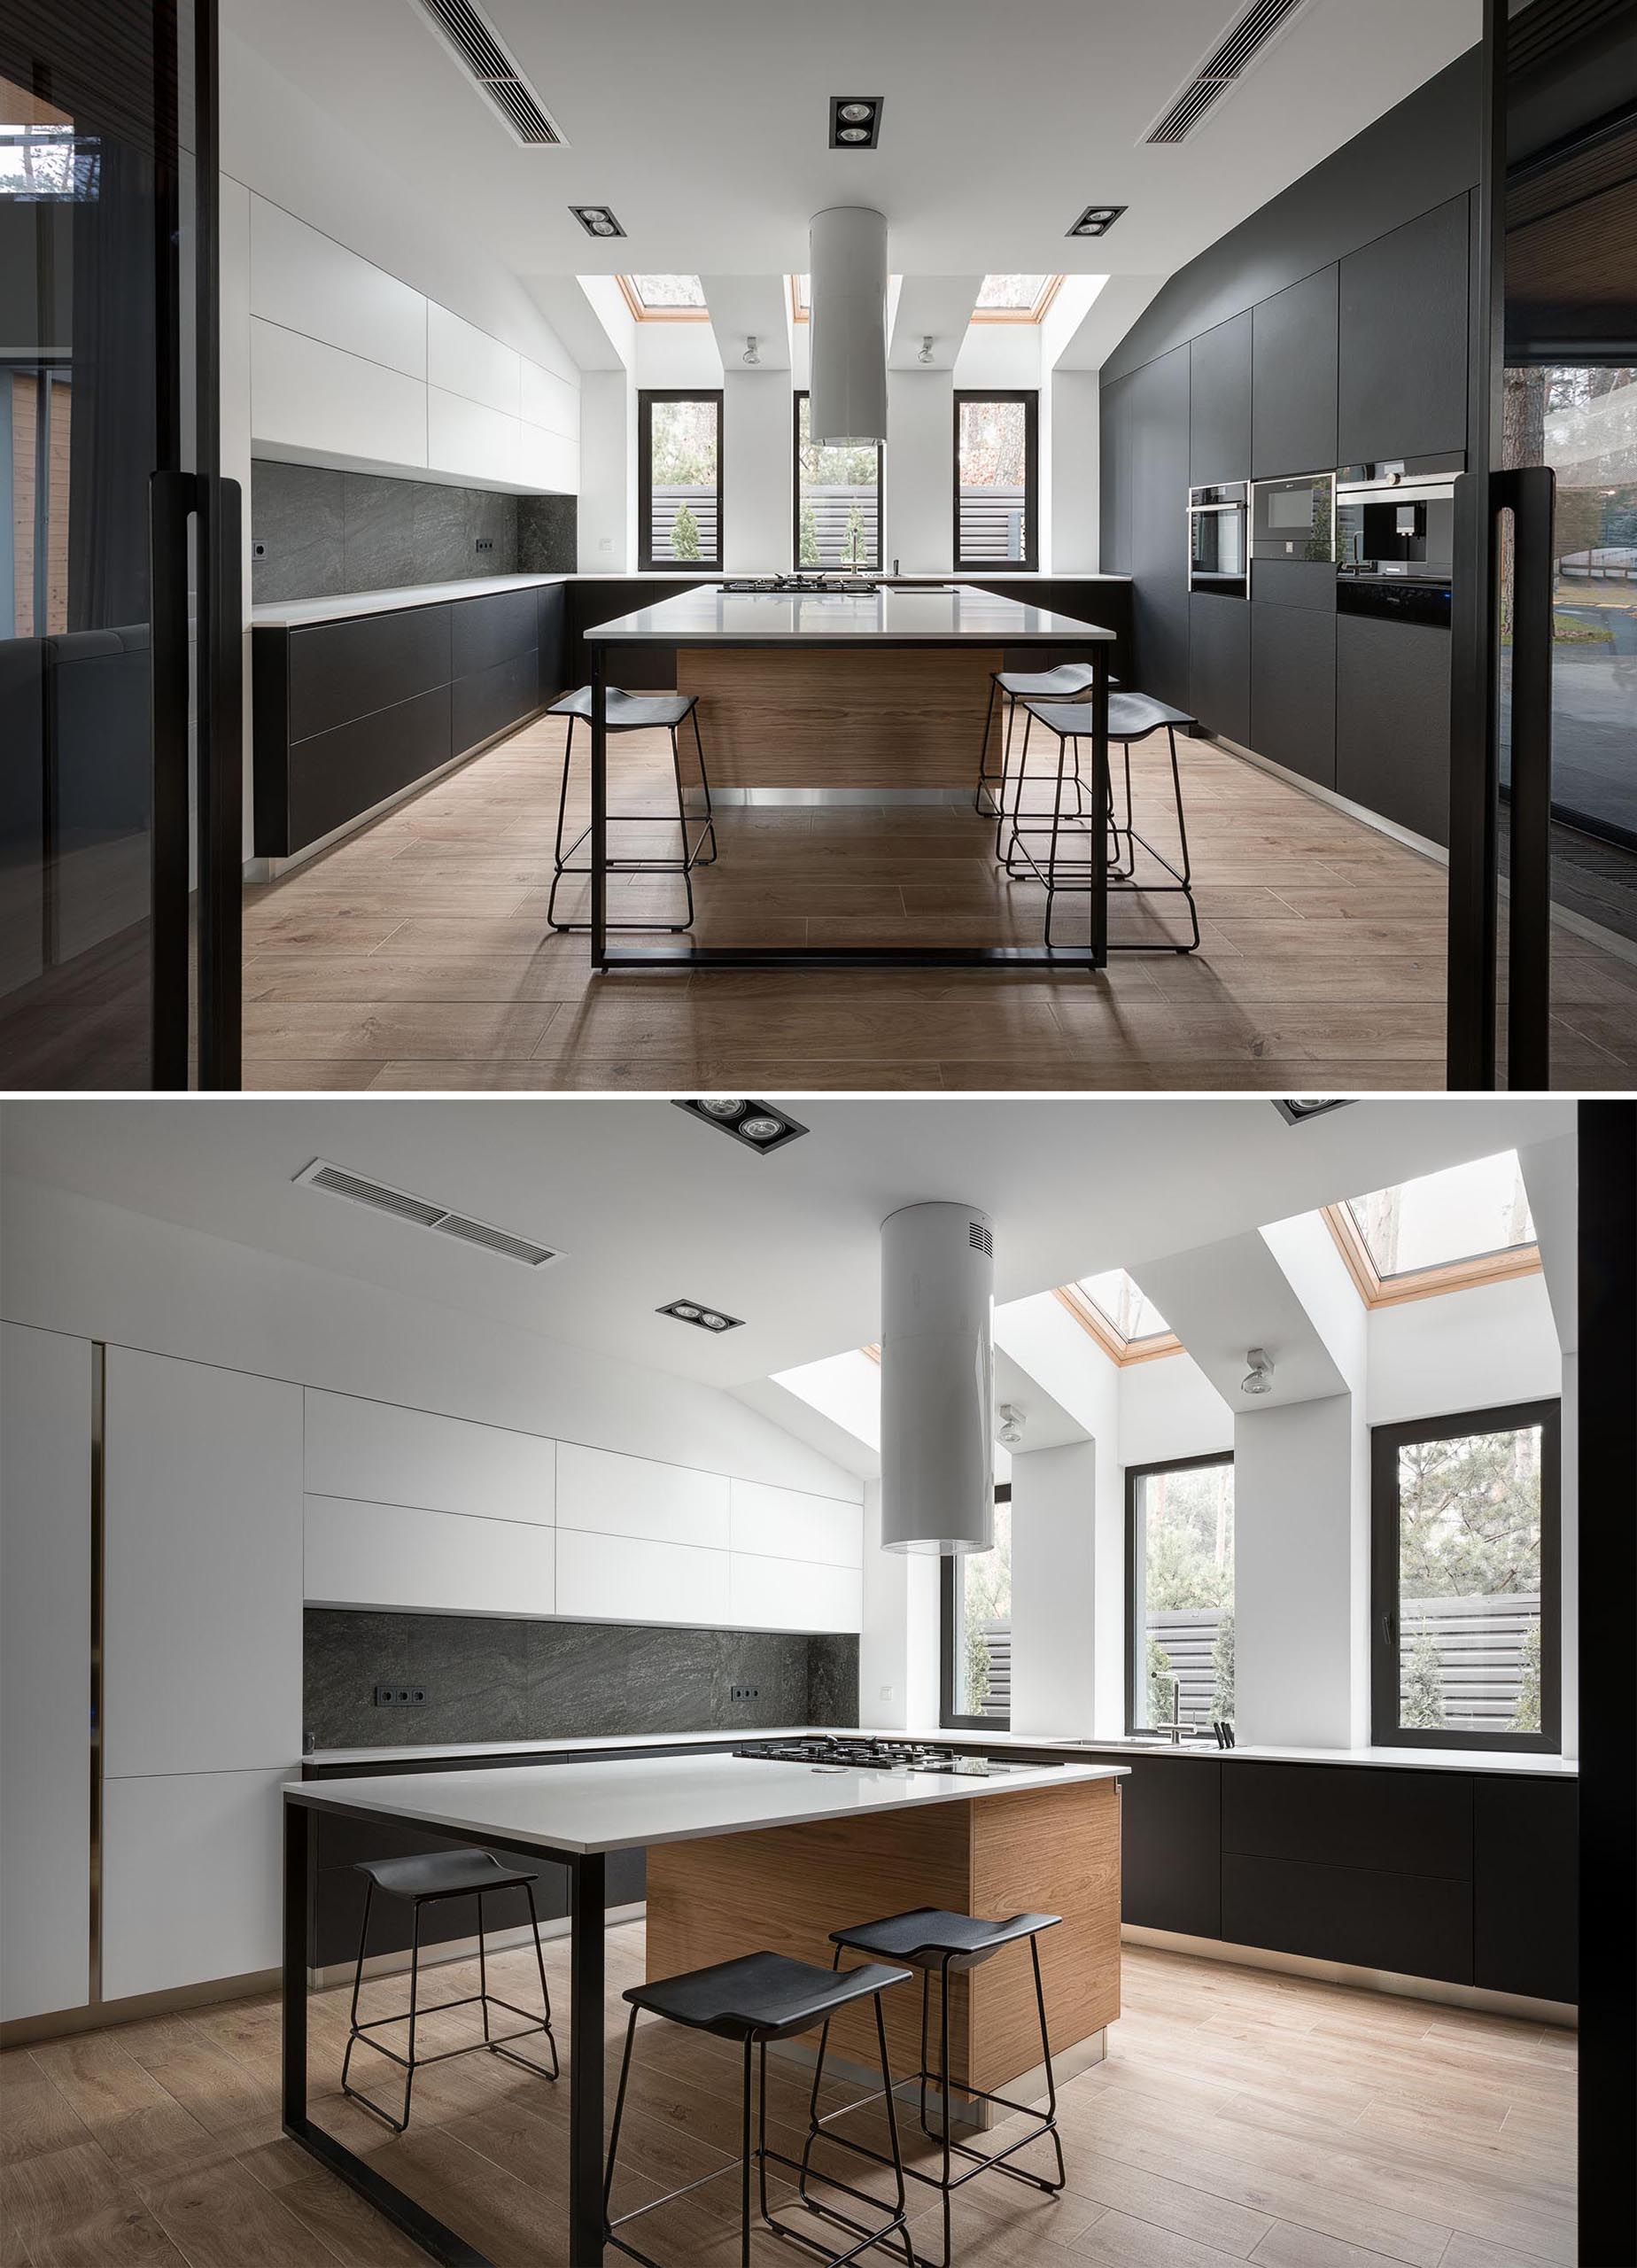 This modern kitchen, which can be opened or closed off to the dining room, includes minimalist, hardware free matte black and white cabinets, as well as an island with a cooktop, and skylights.